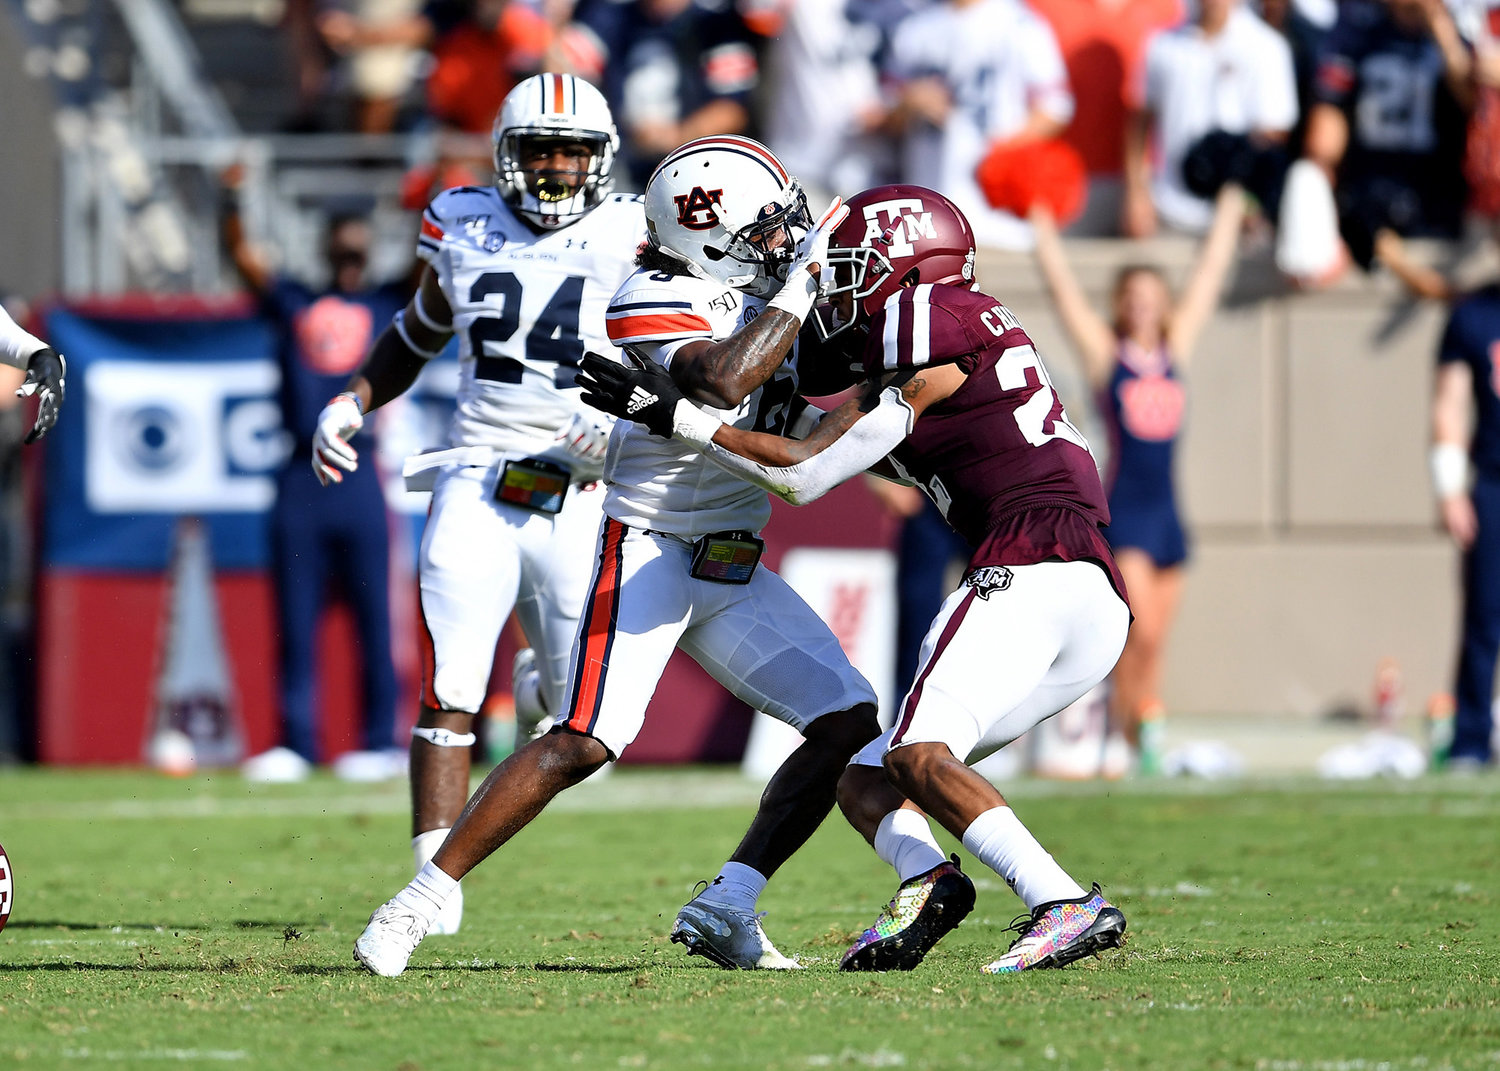 Auburn Tigers wide receiver Ja'Varrius Johnson (6) tries to push off a Texas A&M Aggies player during the second half of an NCAA football game Saturday, Sept. 21, 2019, at Kyle Field in College Station Texas. Auburn wins 28-20.